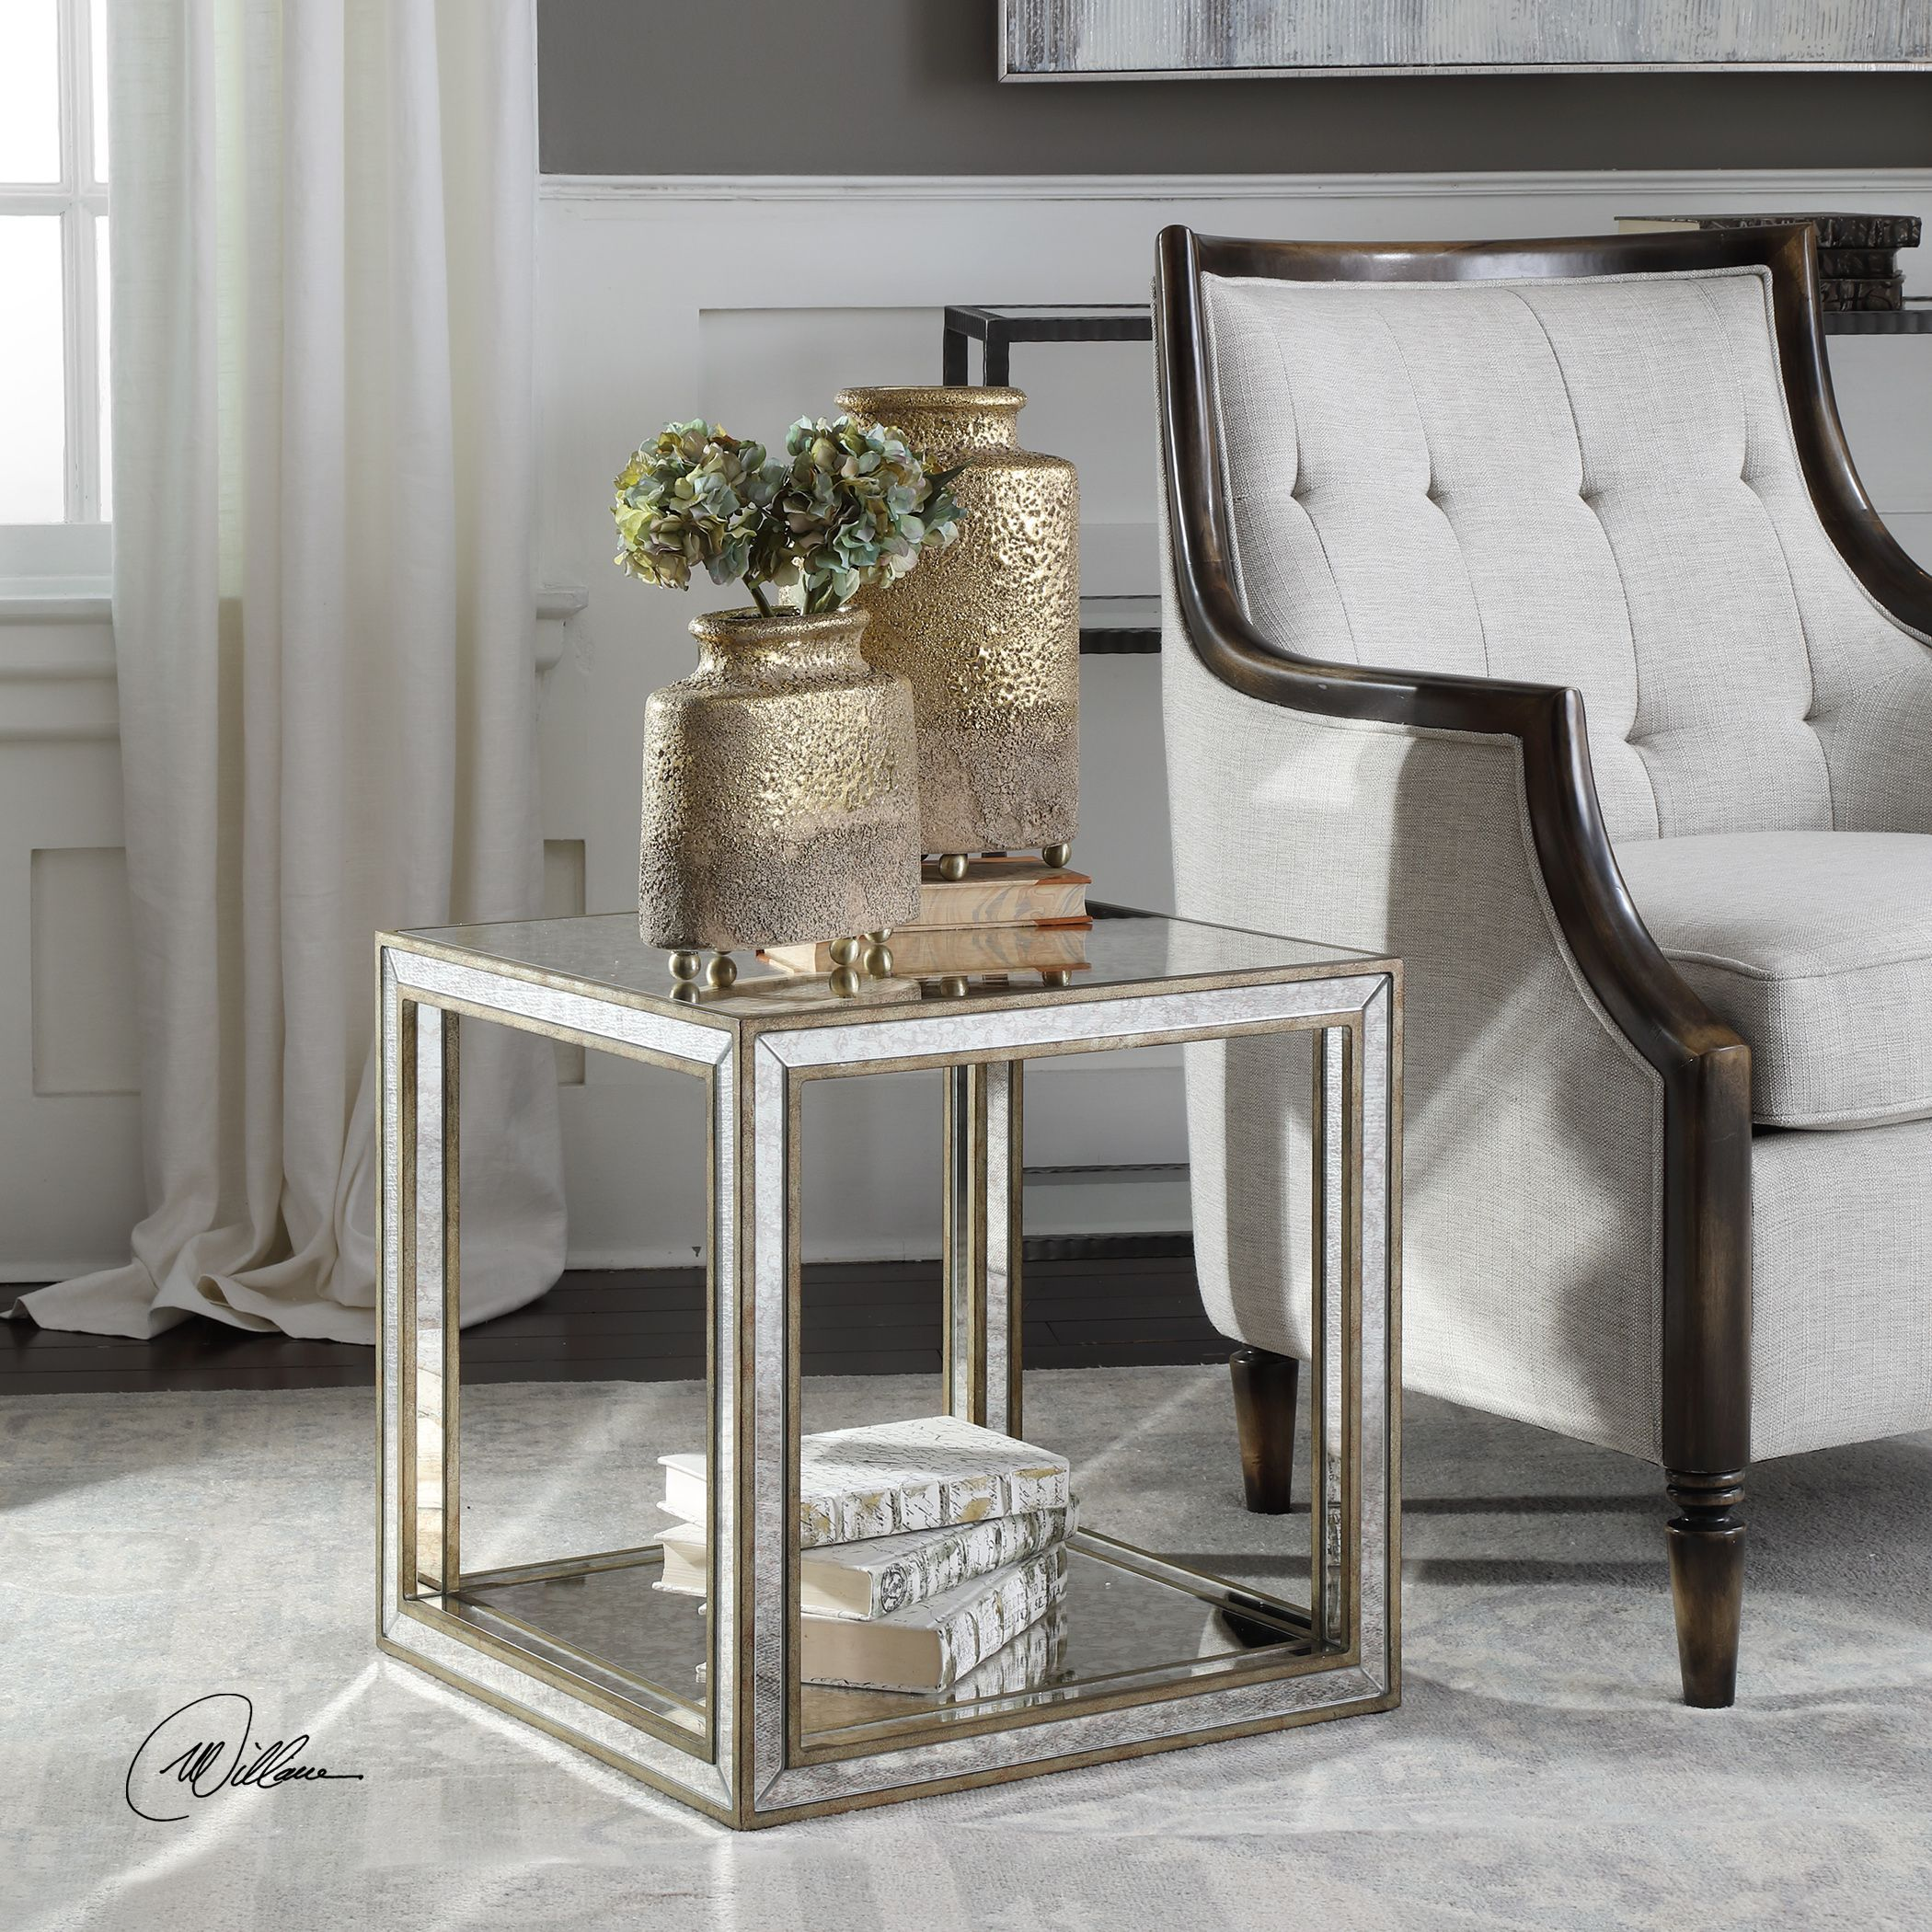 julie contemporary antique mirrored open cube accent table uttermost home ornaments wine rack shelf side with drawer white diy desk plans banquet tablecloths lamp tables for